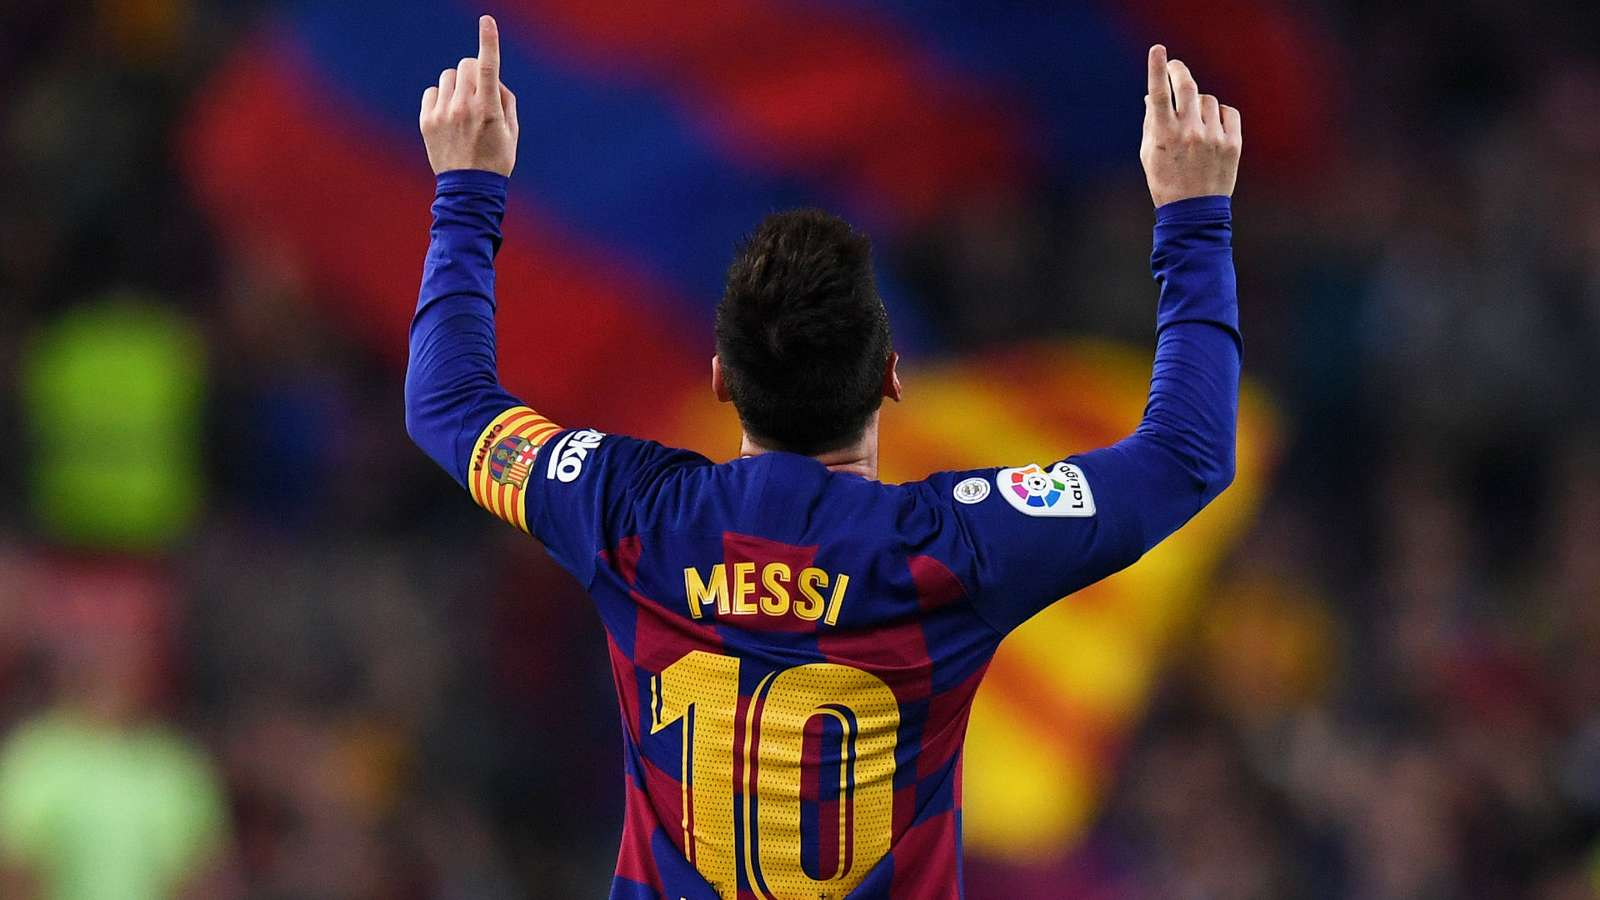 'The greatest footballer of all time' - Gundogan says Messi is the star of this generation - Bóng Đá